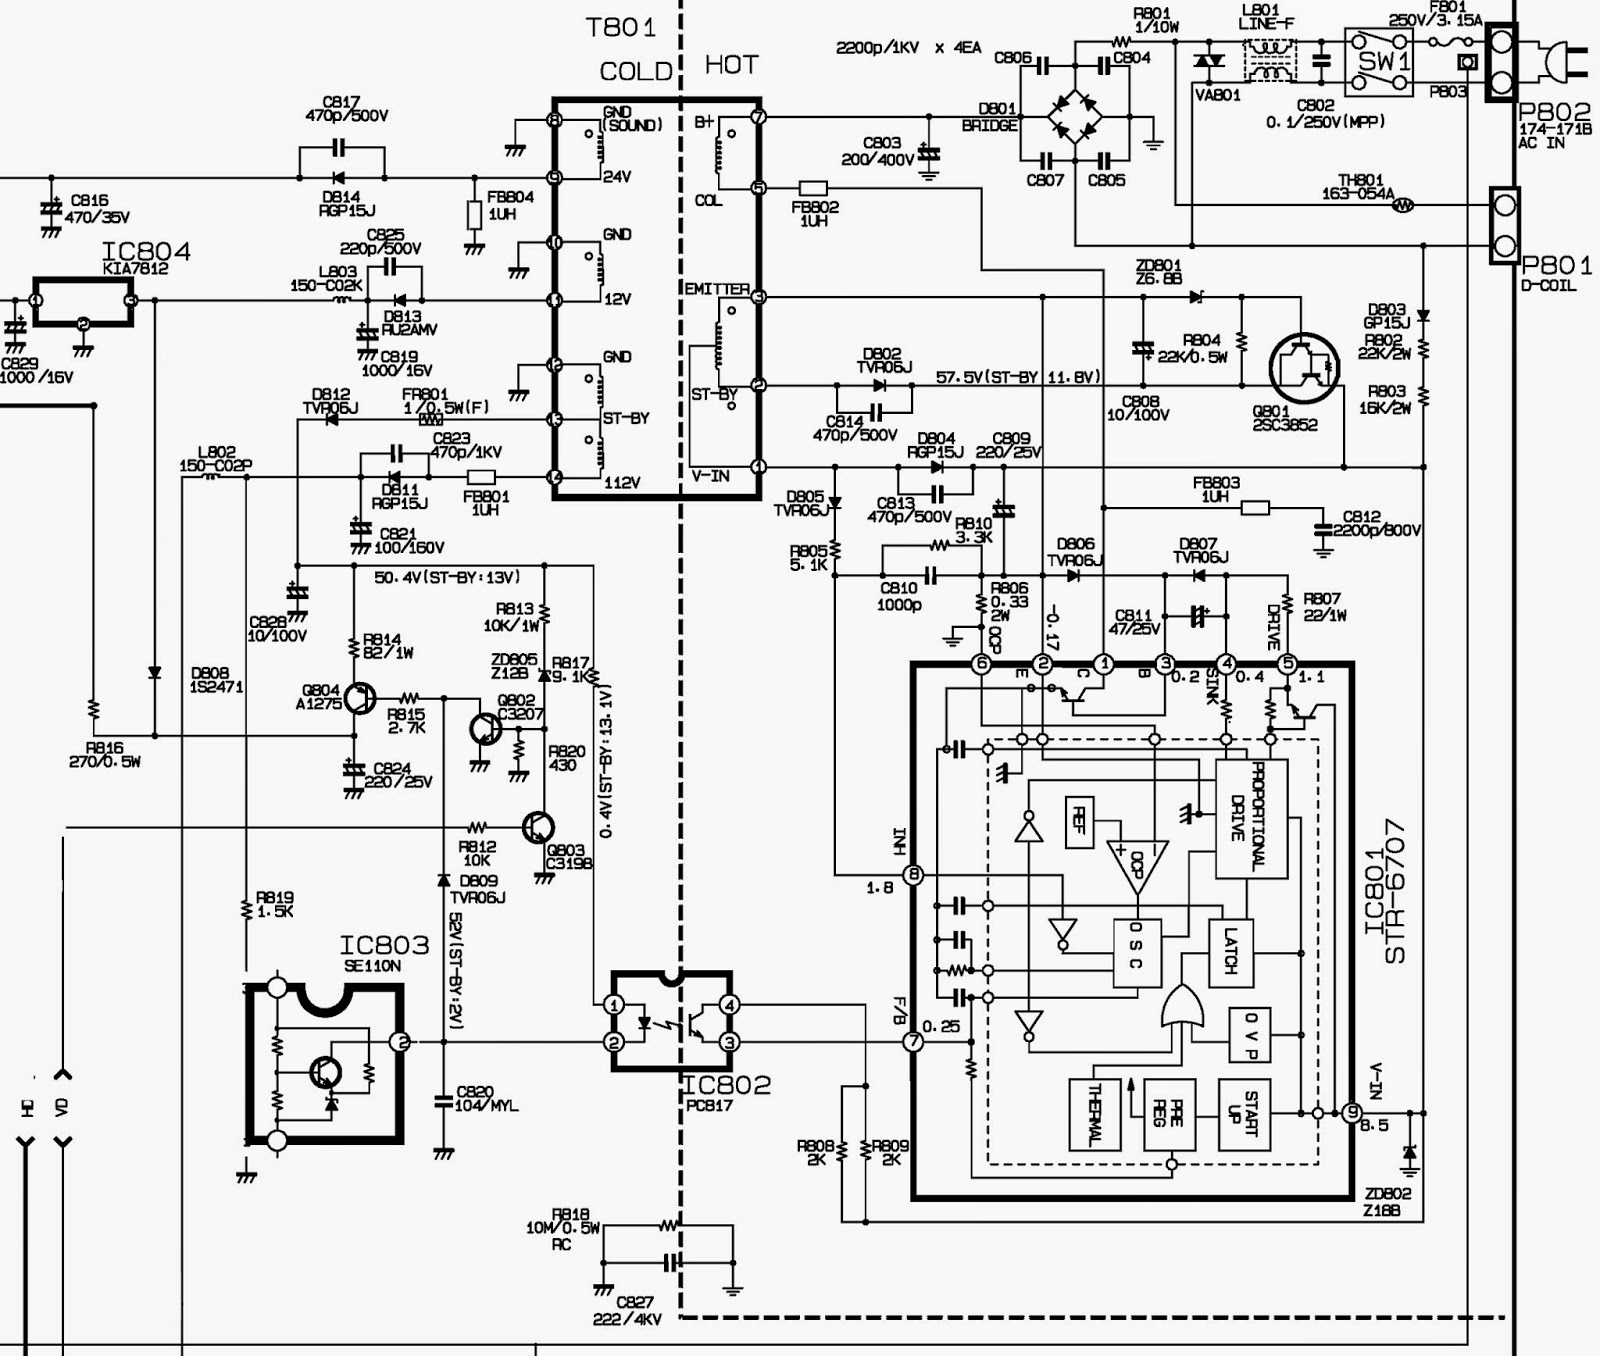 STR - 6707 - SMPS SCHEMATIC [Circuit Diagram] | Electro help